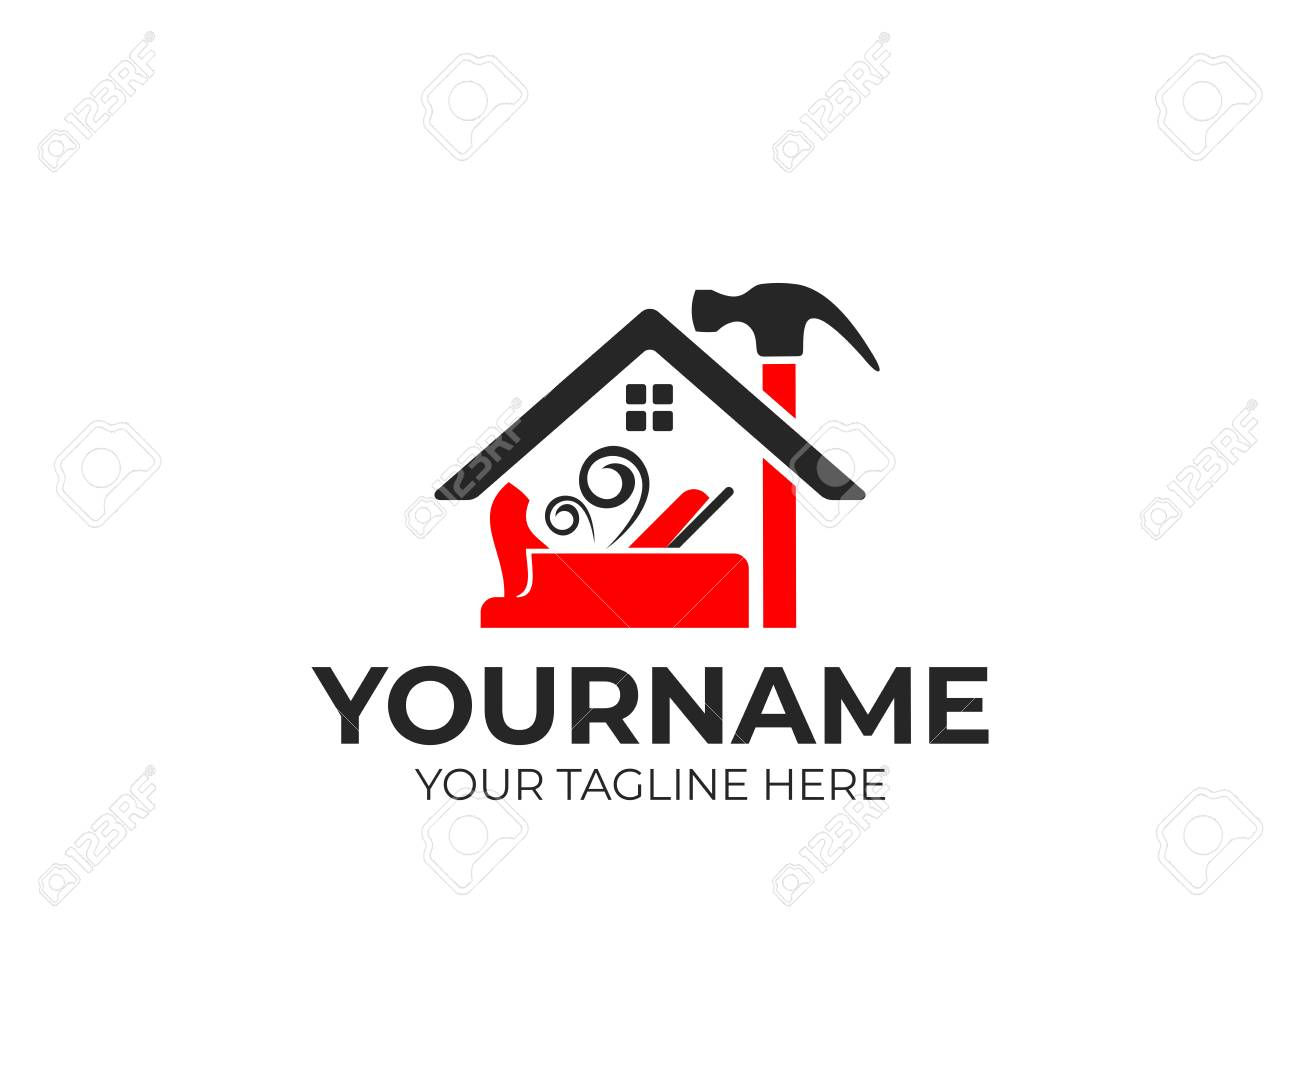 Construction and tools, carpenter or joiner plane, hammer and home logo design. House building, real estate, repair and improvement - 122375476